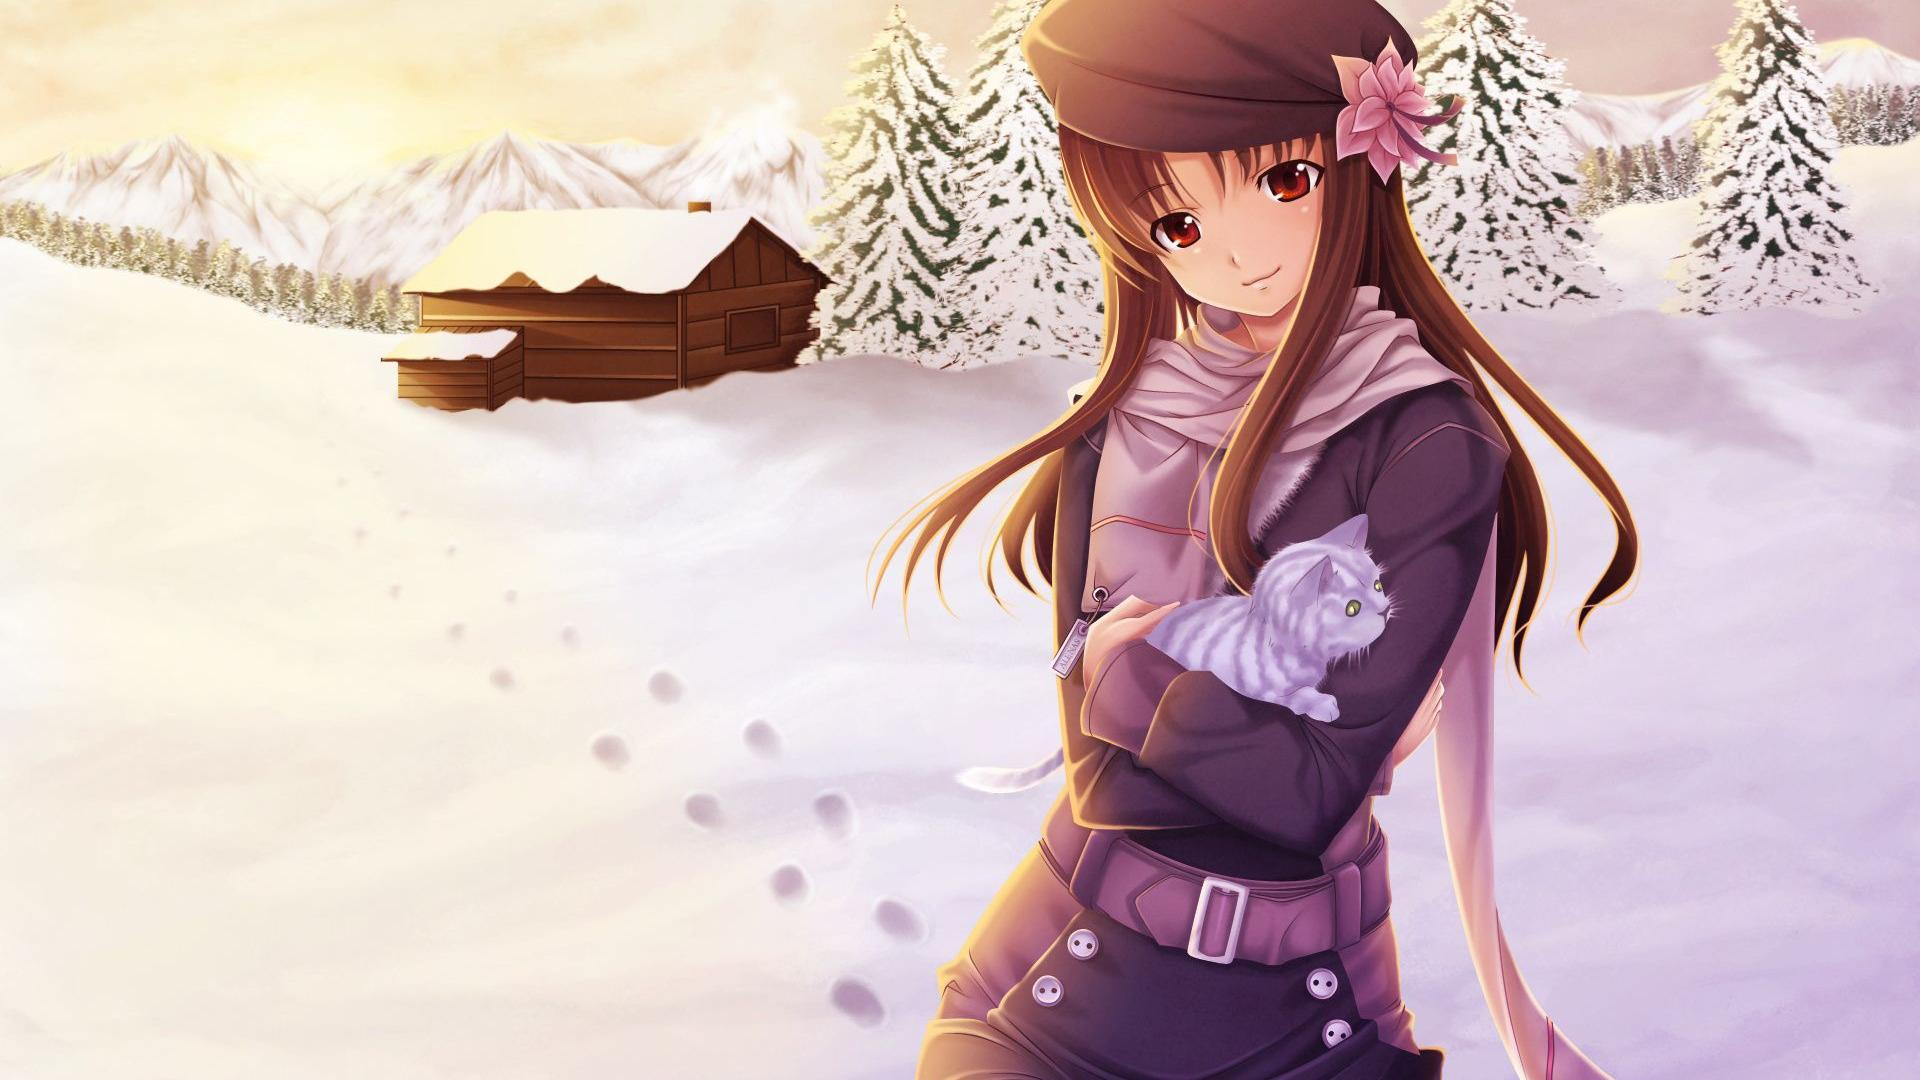 Anime girl wallpapers movie hd wallpapers - Anime girl full hd ...